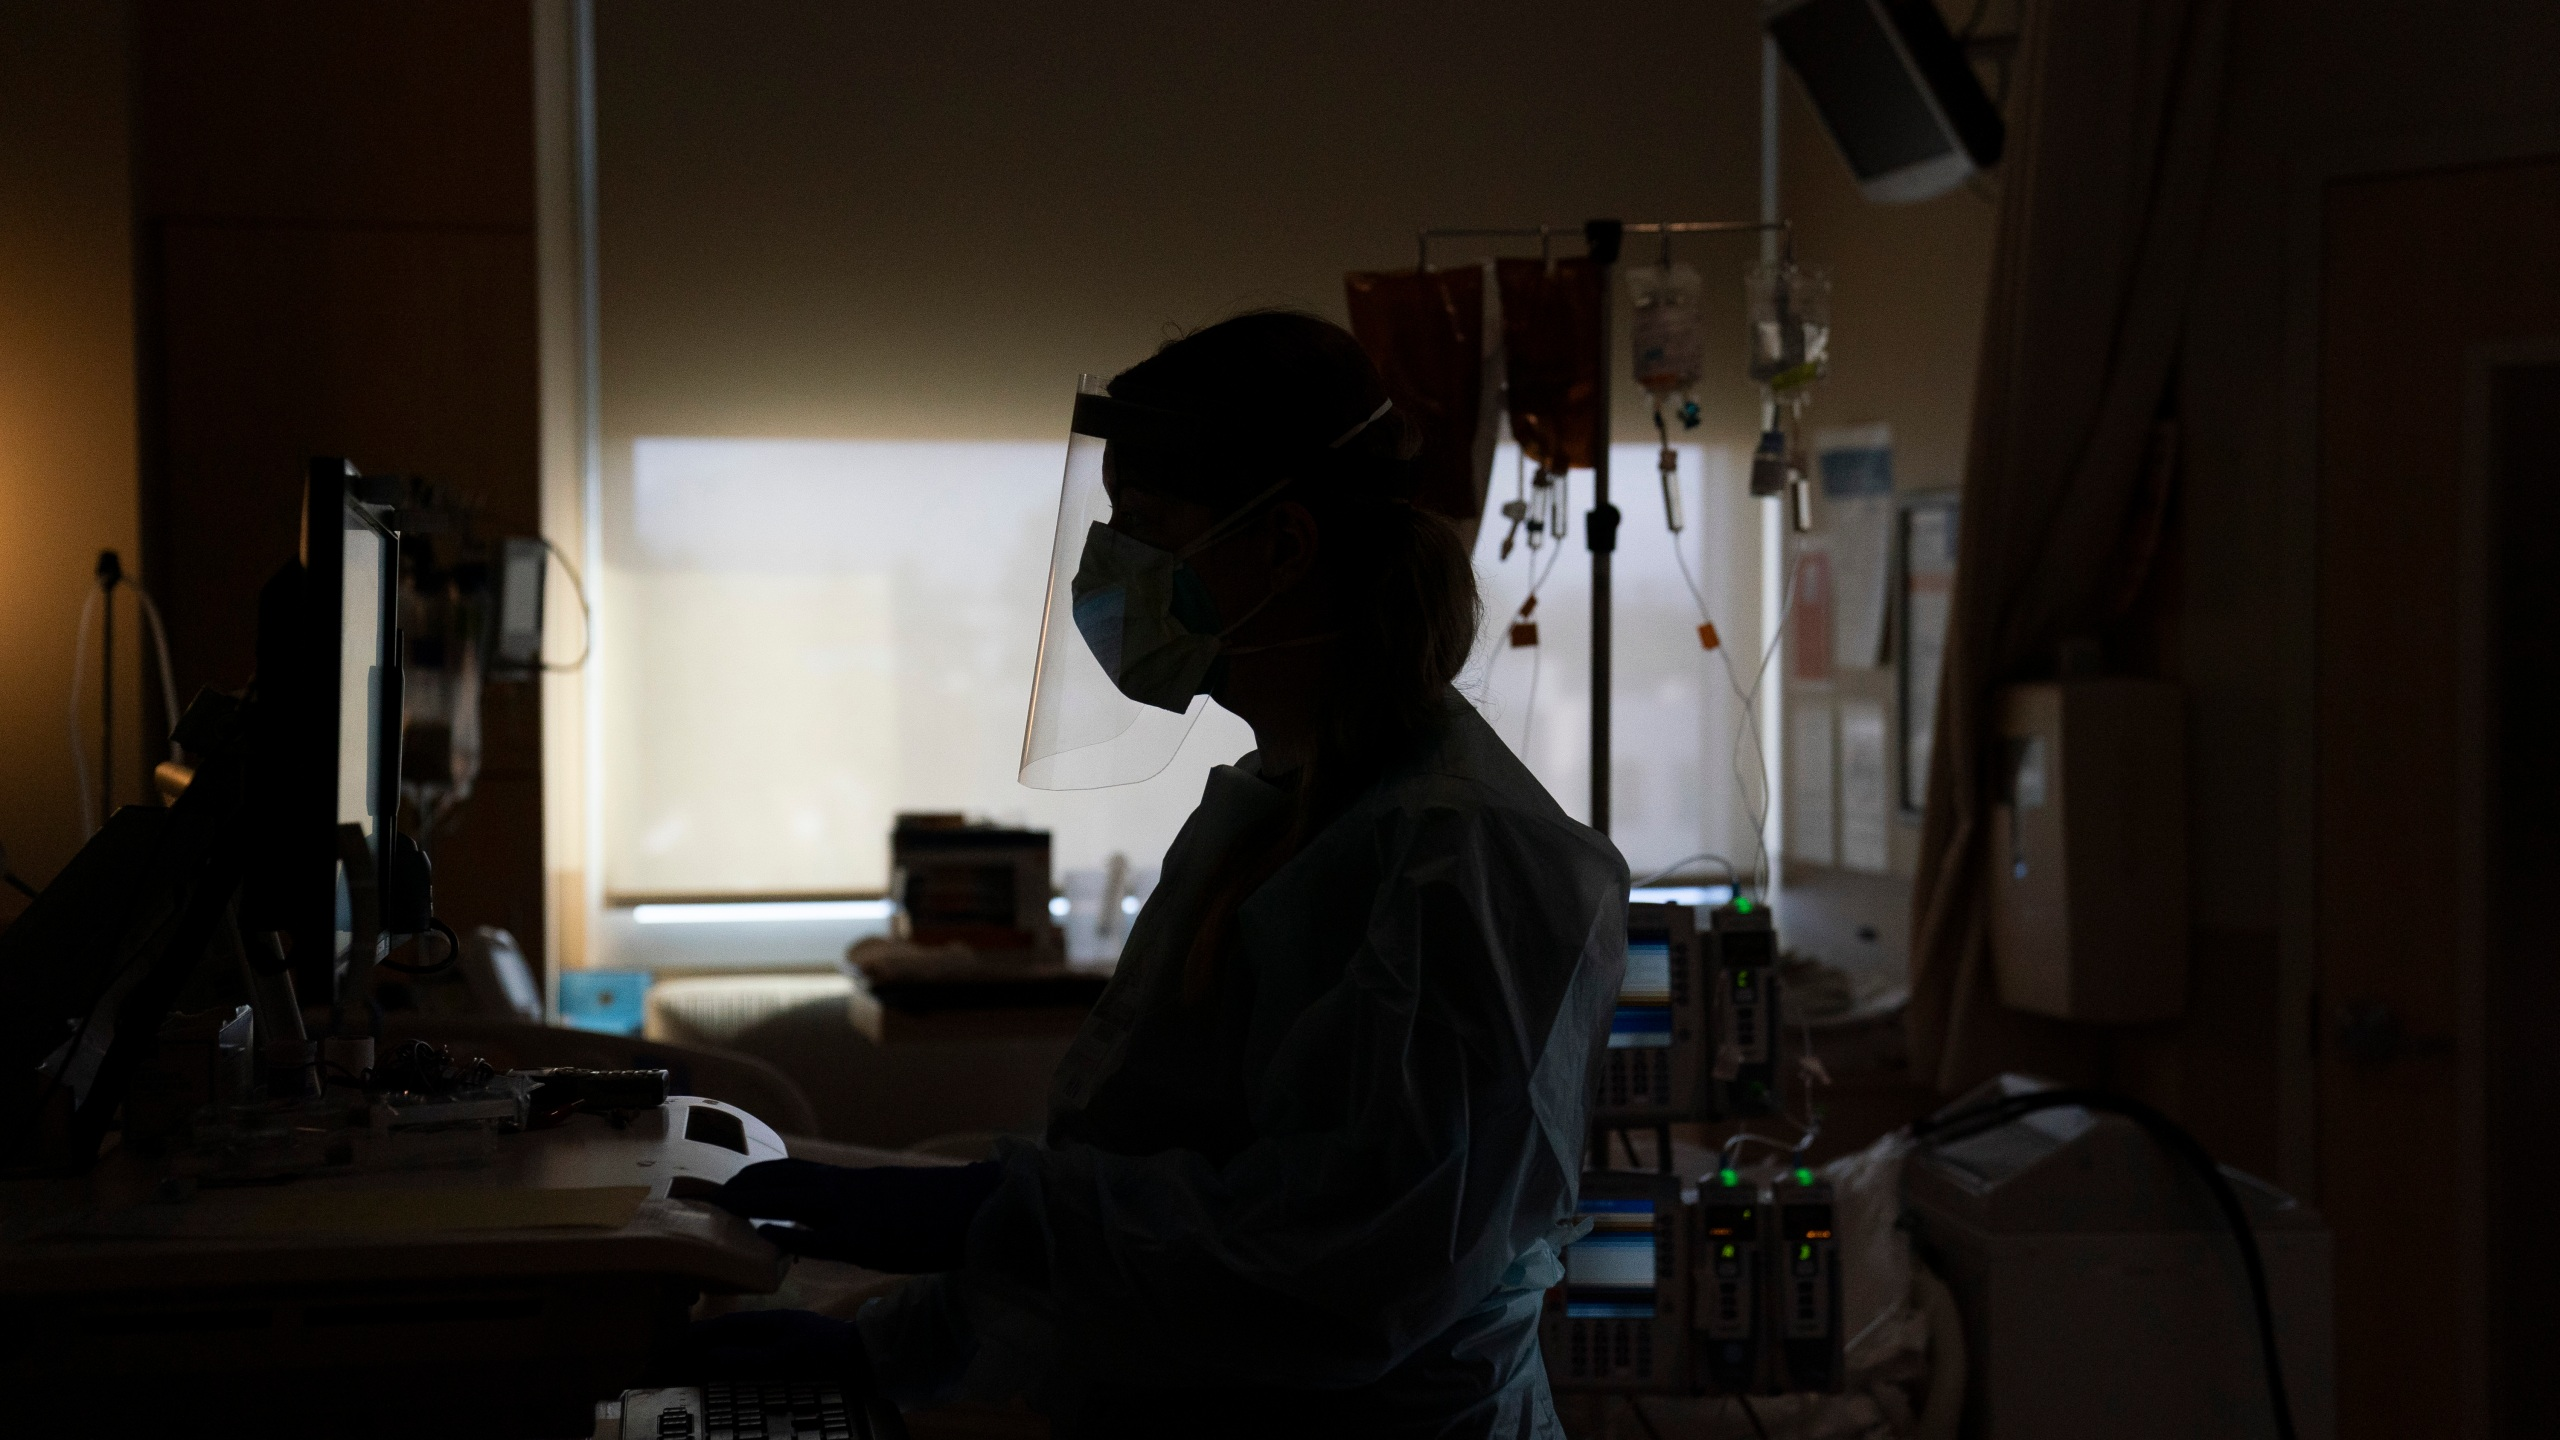 In this Nov. 19, 2020, file photo, a nurse works on a computer while assisting a COVID-19 patient at a hospital in Los Angeles. Across the country, doctors and nurses on the front lines of the coronavirus pandemic are dealing with hostility, threats and violence from patients angry over safety rules designed to keep the virus from spreading. (AP Photo/Jae C. Hong, File)